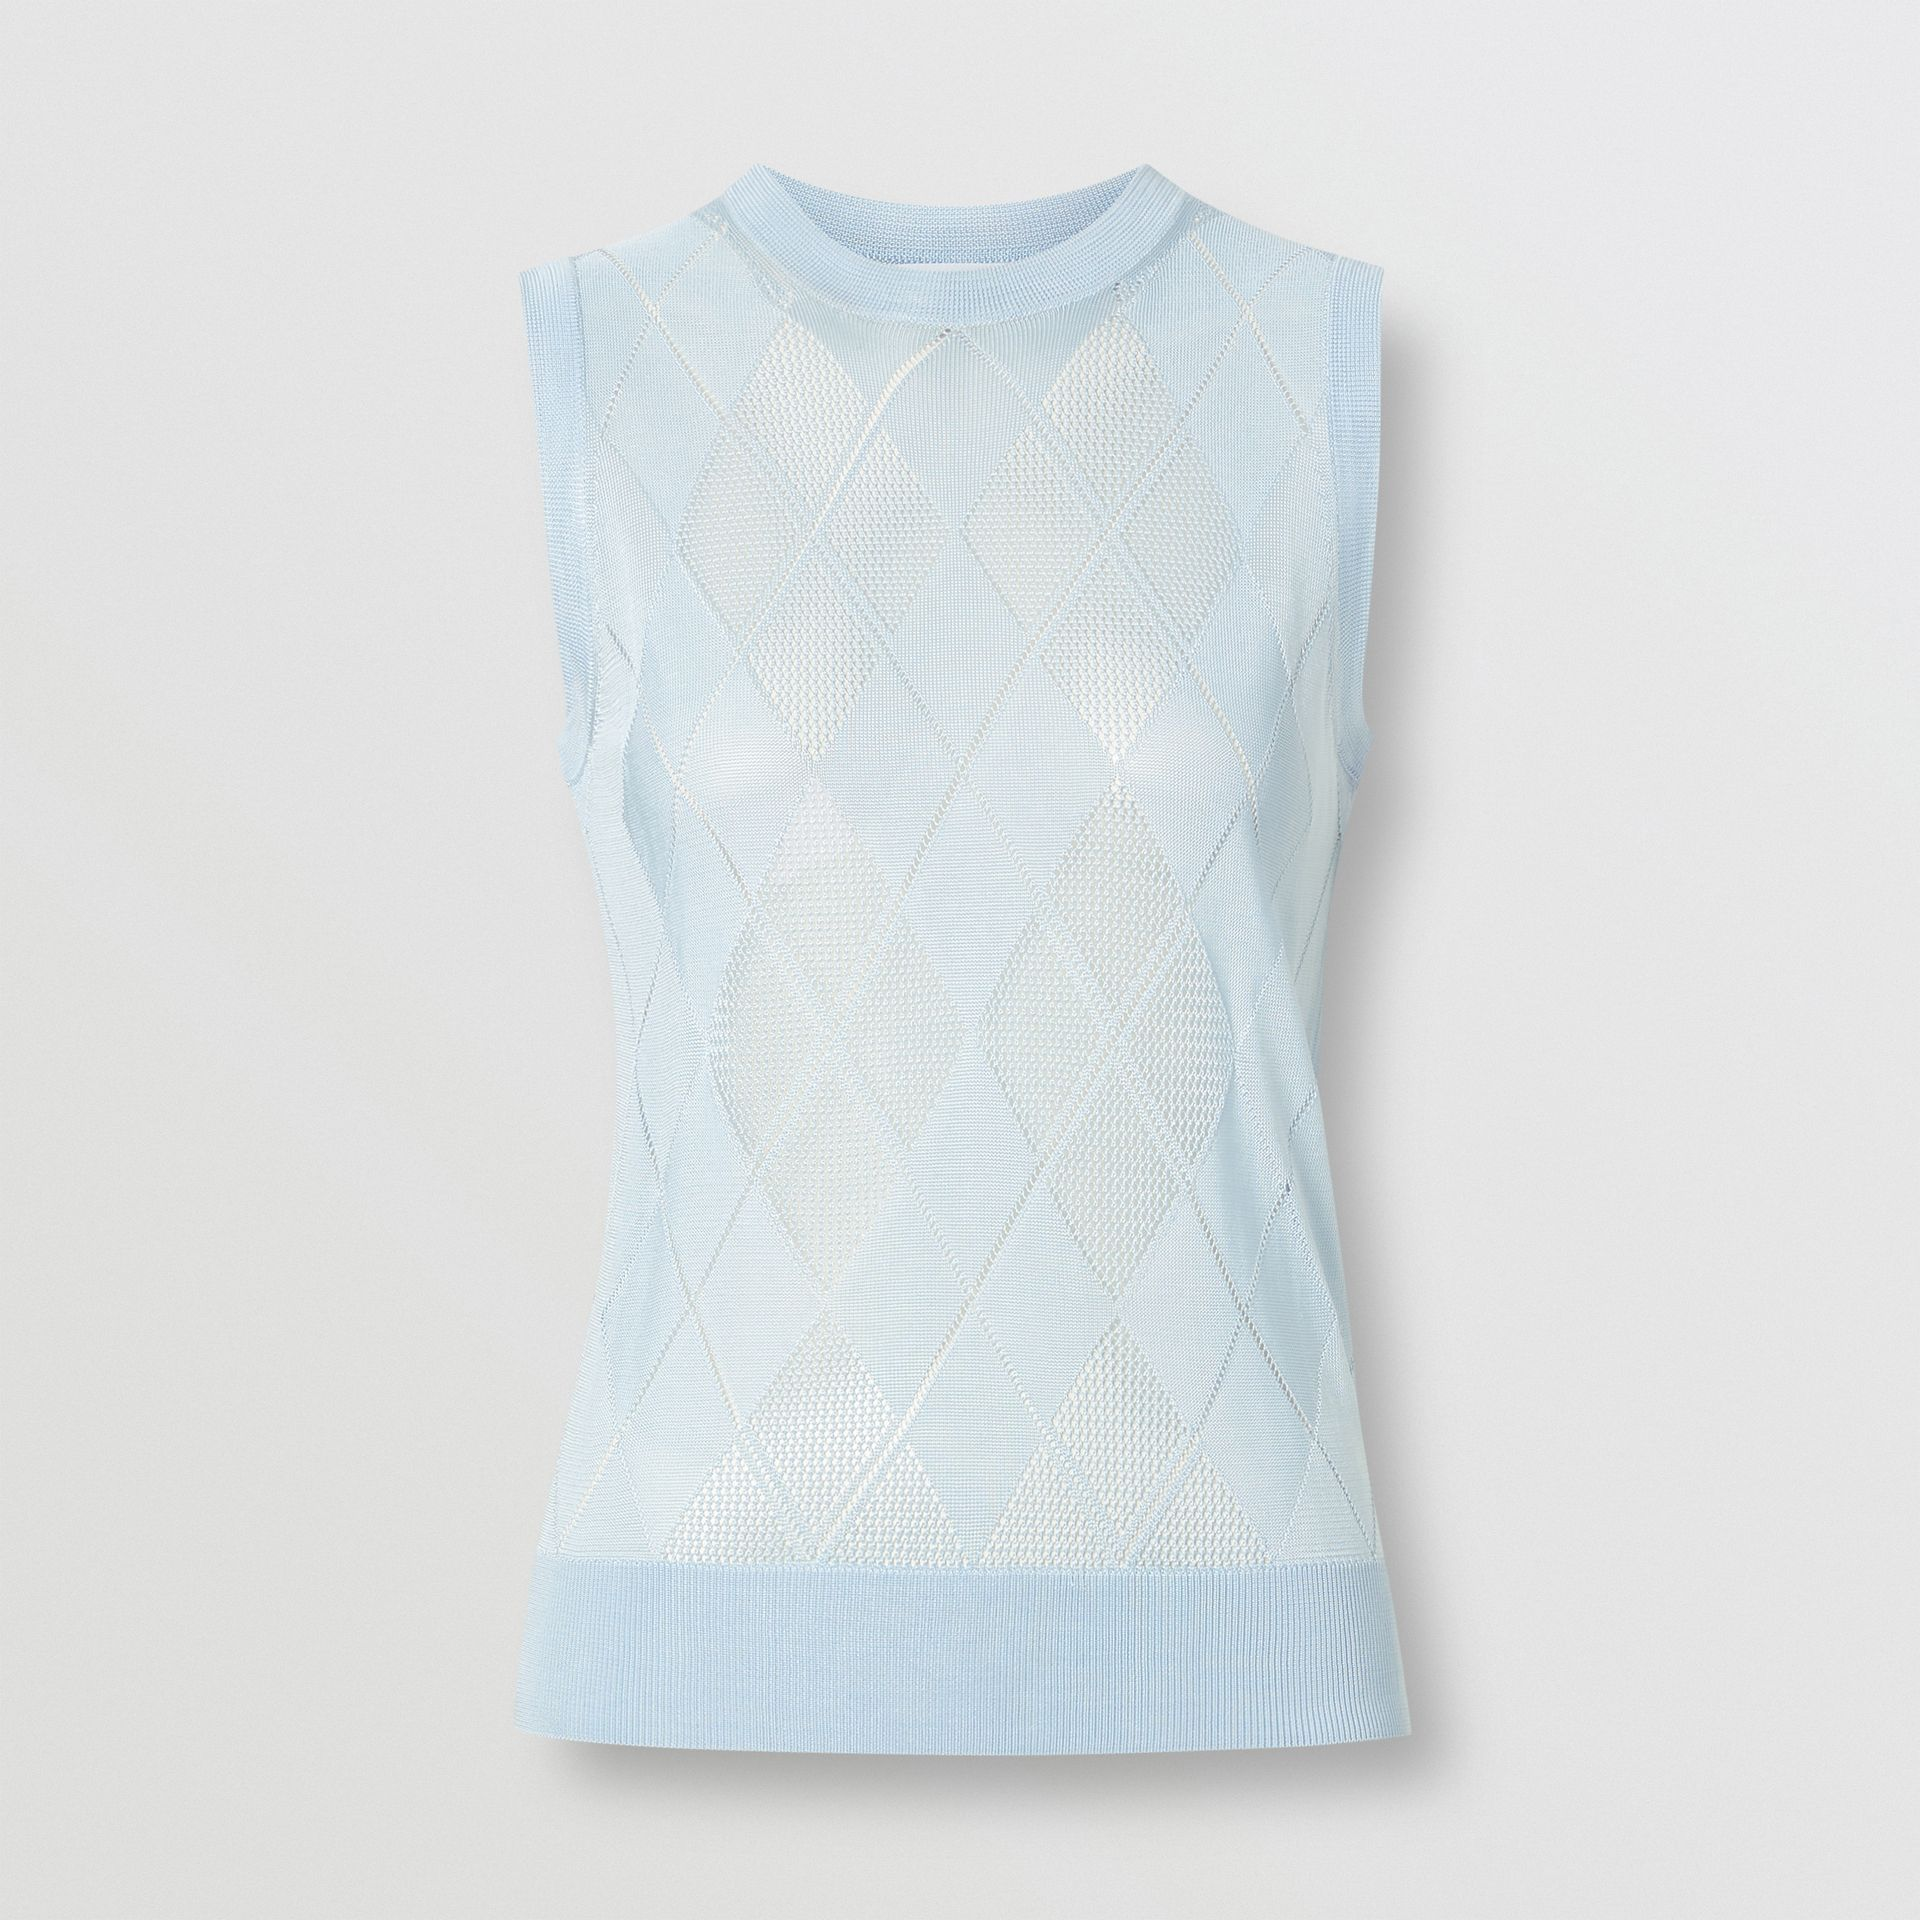 Monogram Motif Pointelle Knit Vest in Pale Blue - Women | Burberry United Kingdom - gallery image 3